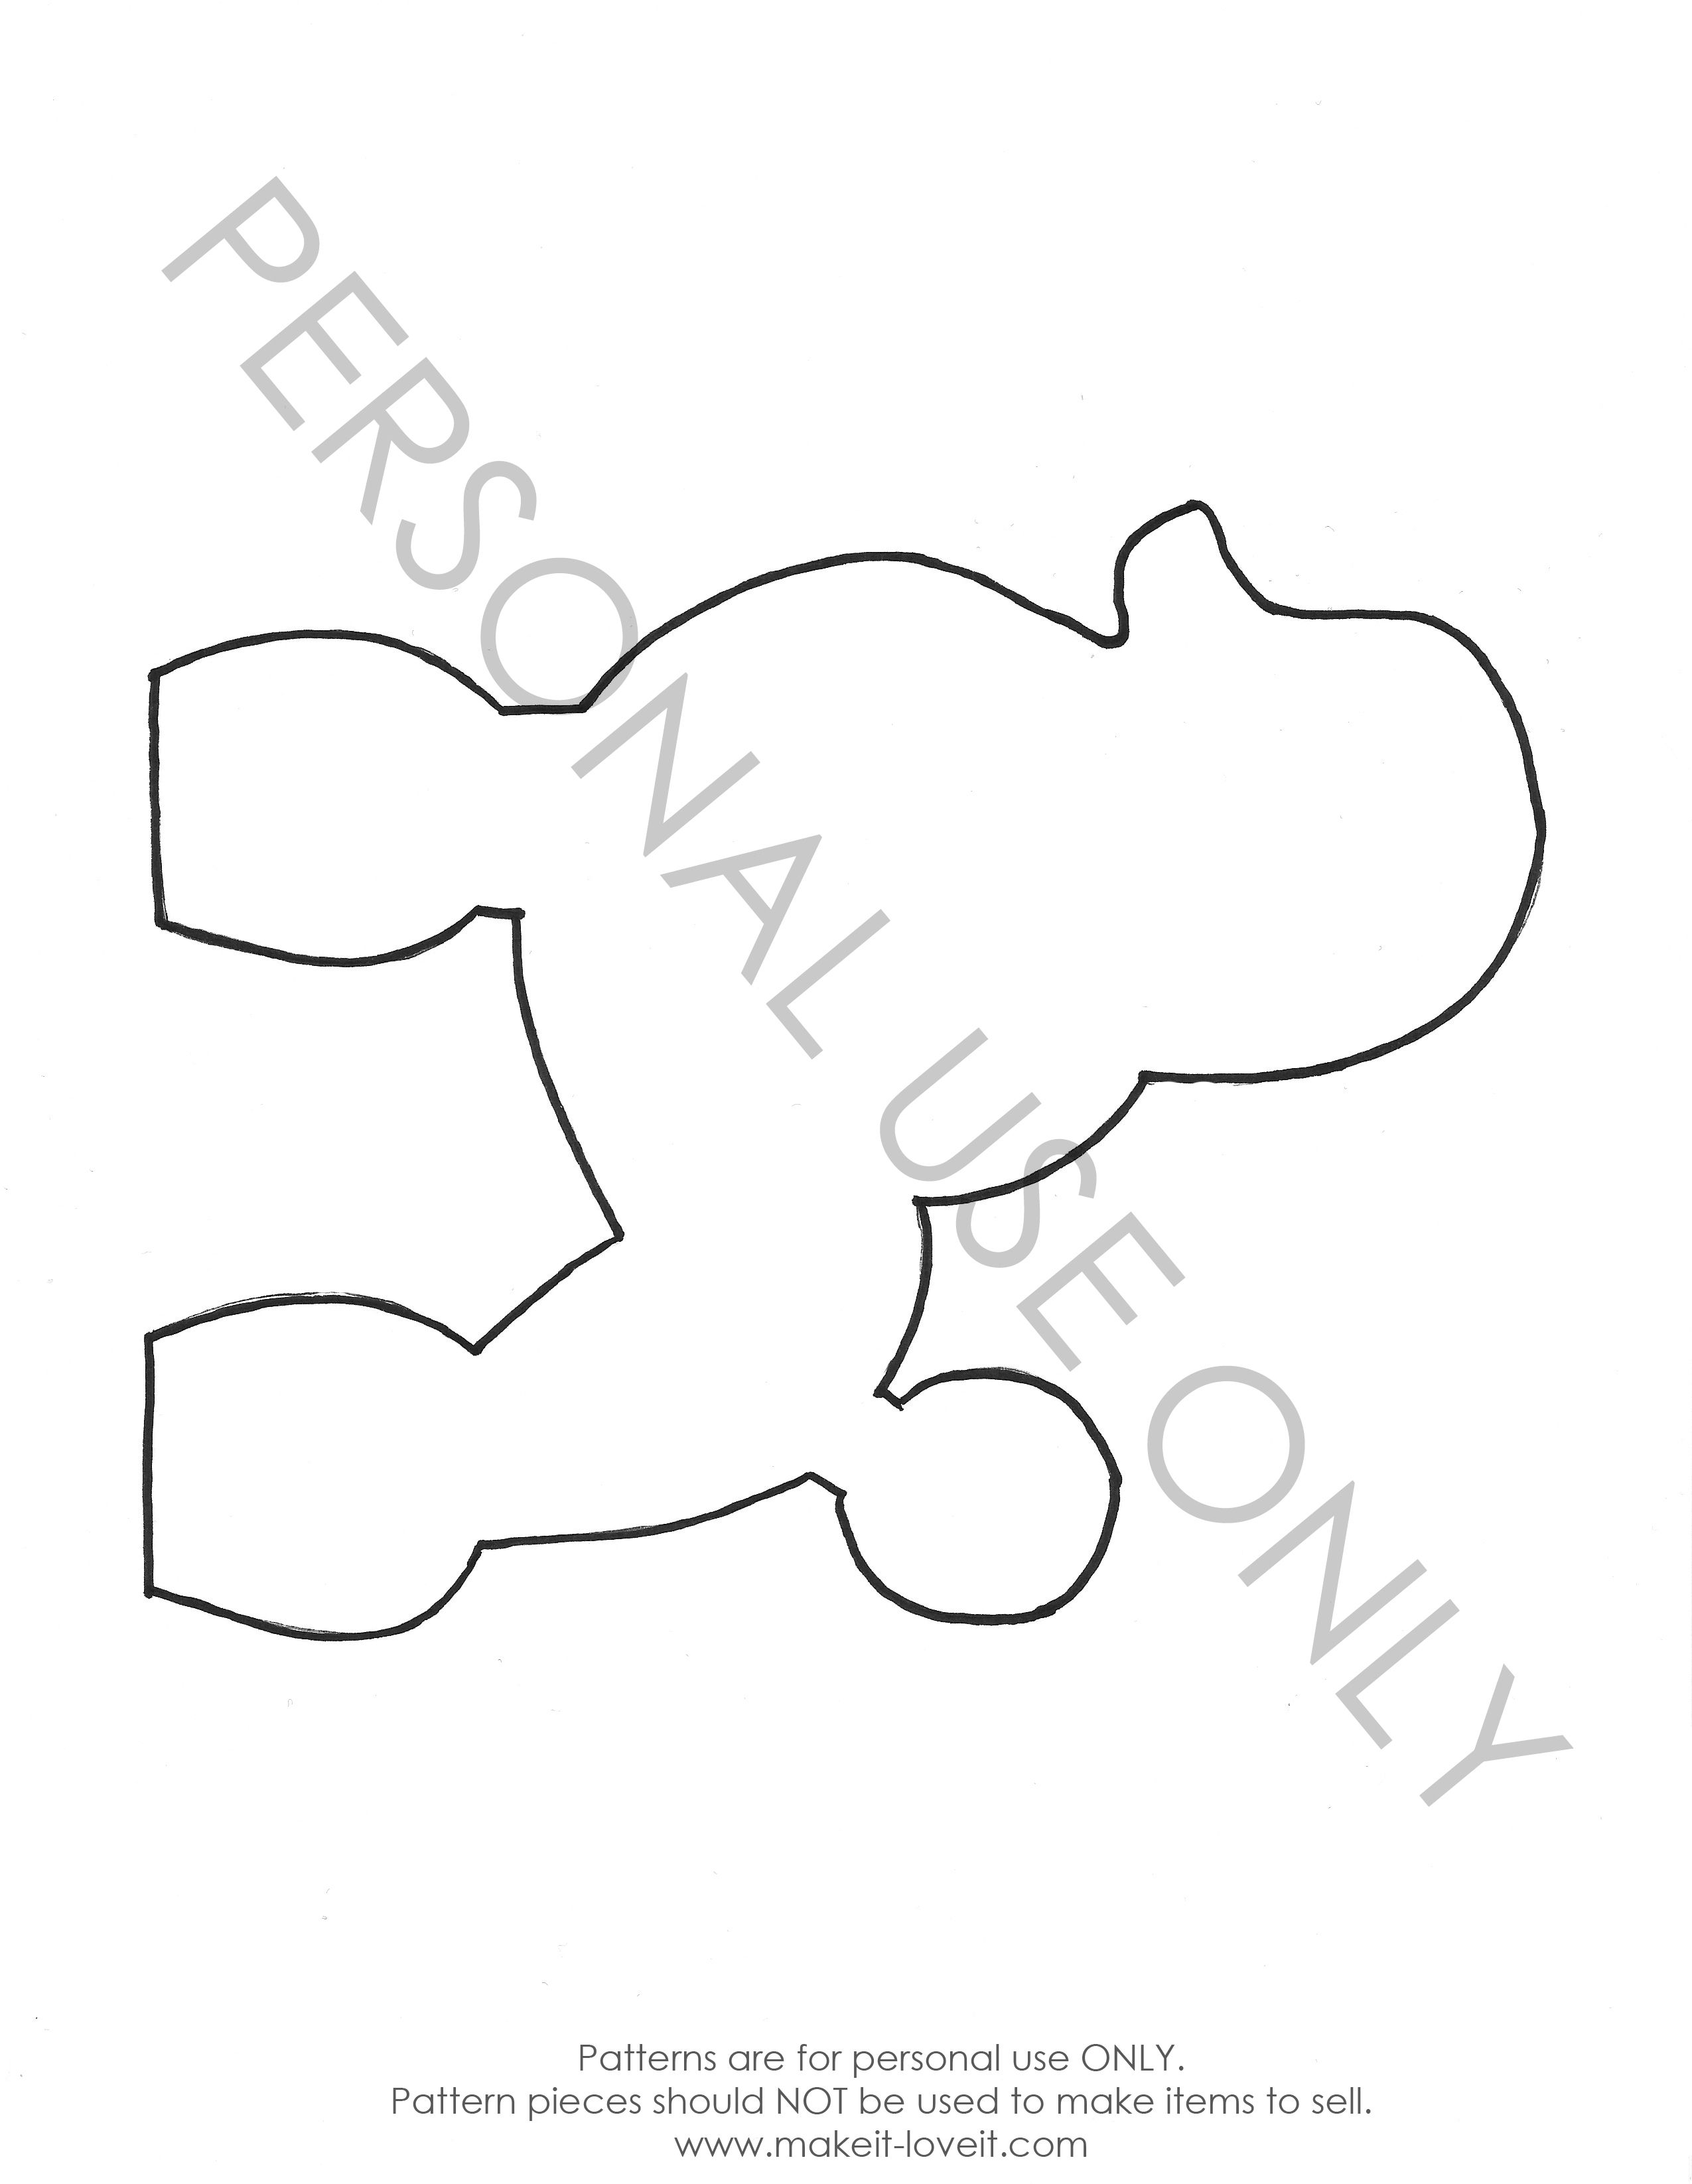 Free Pattern Pieces Fabric Doll Pattern Poodle Applique Templates Free